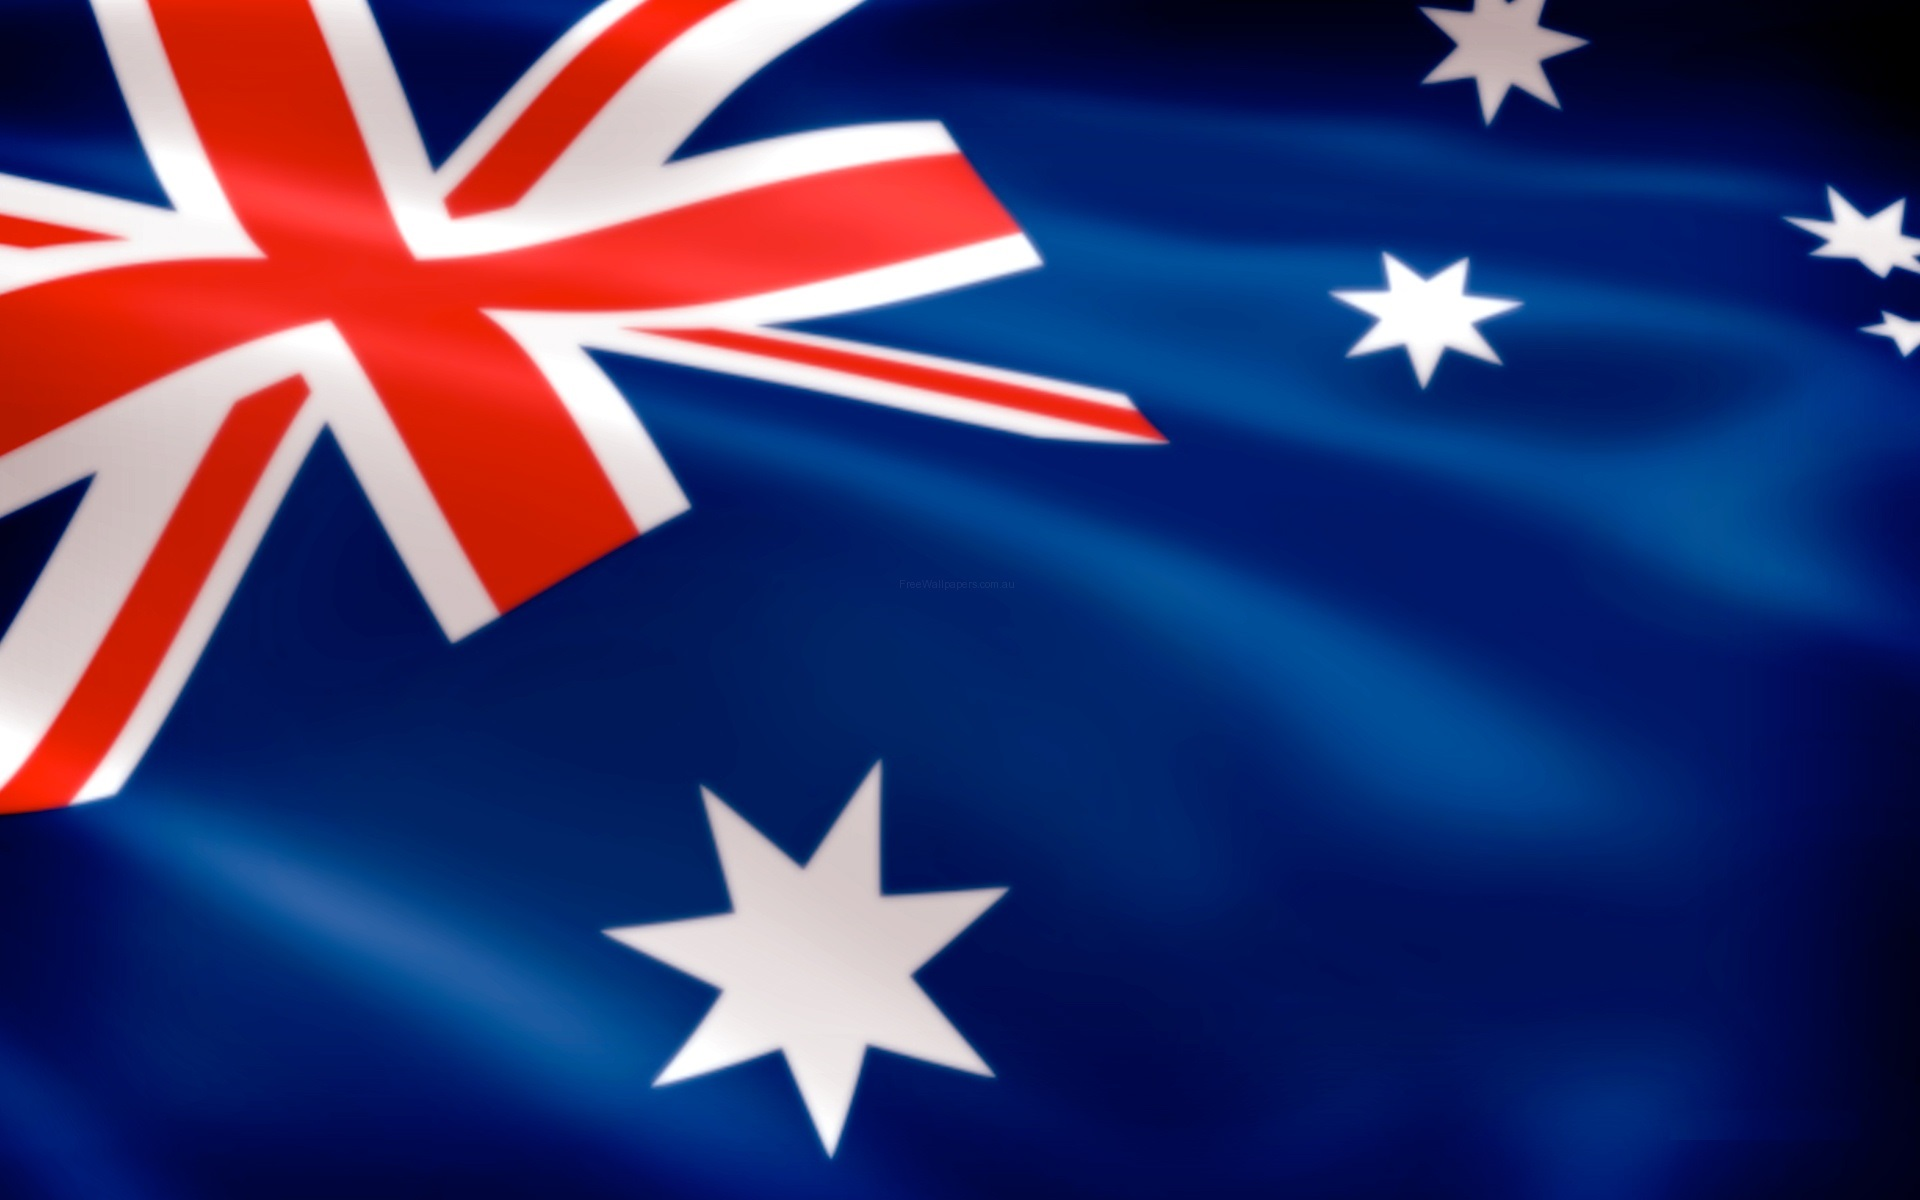 Australia Day Wallpaper 71 images in Collection Page 1 1920x1200